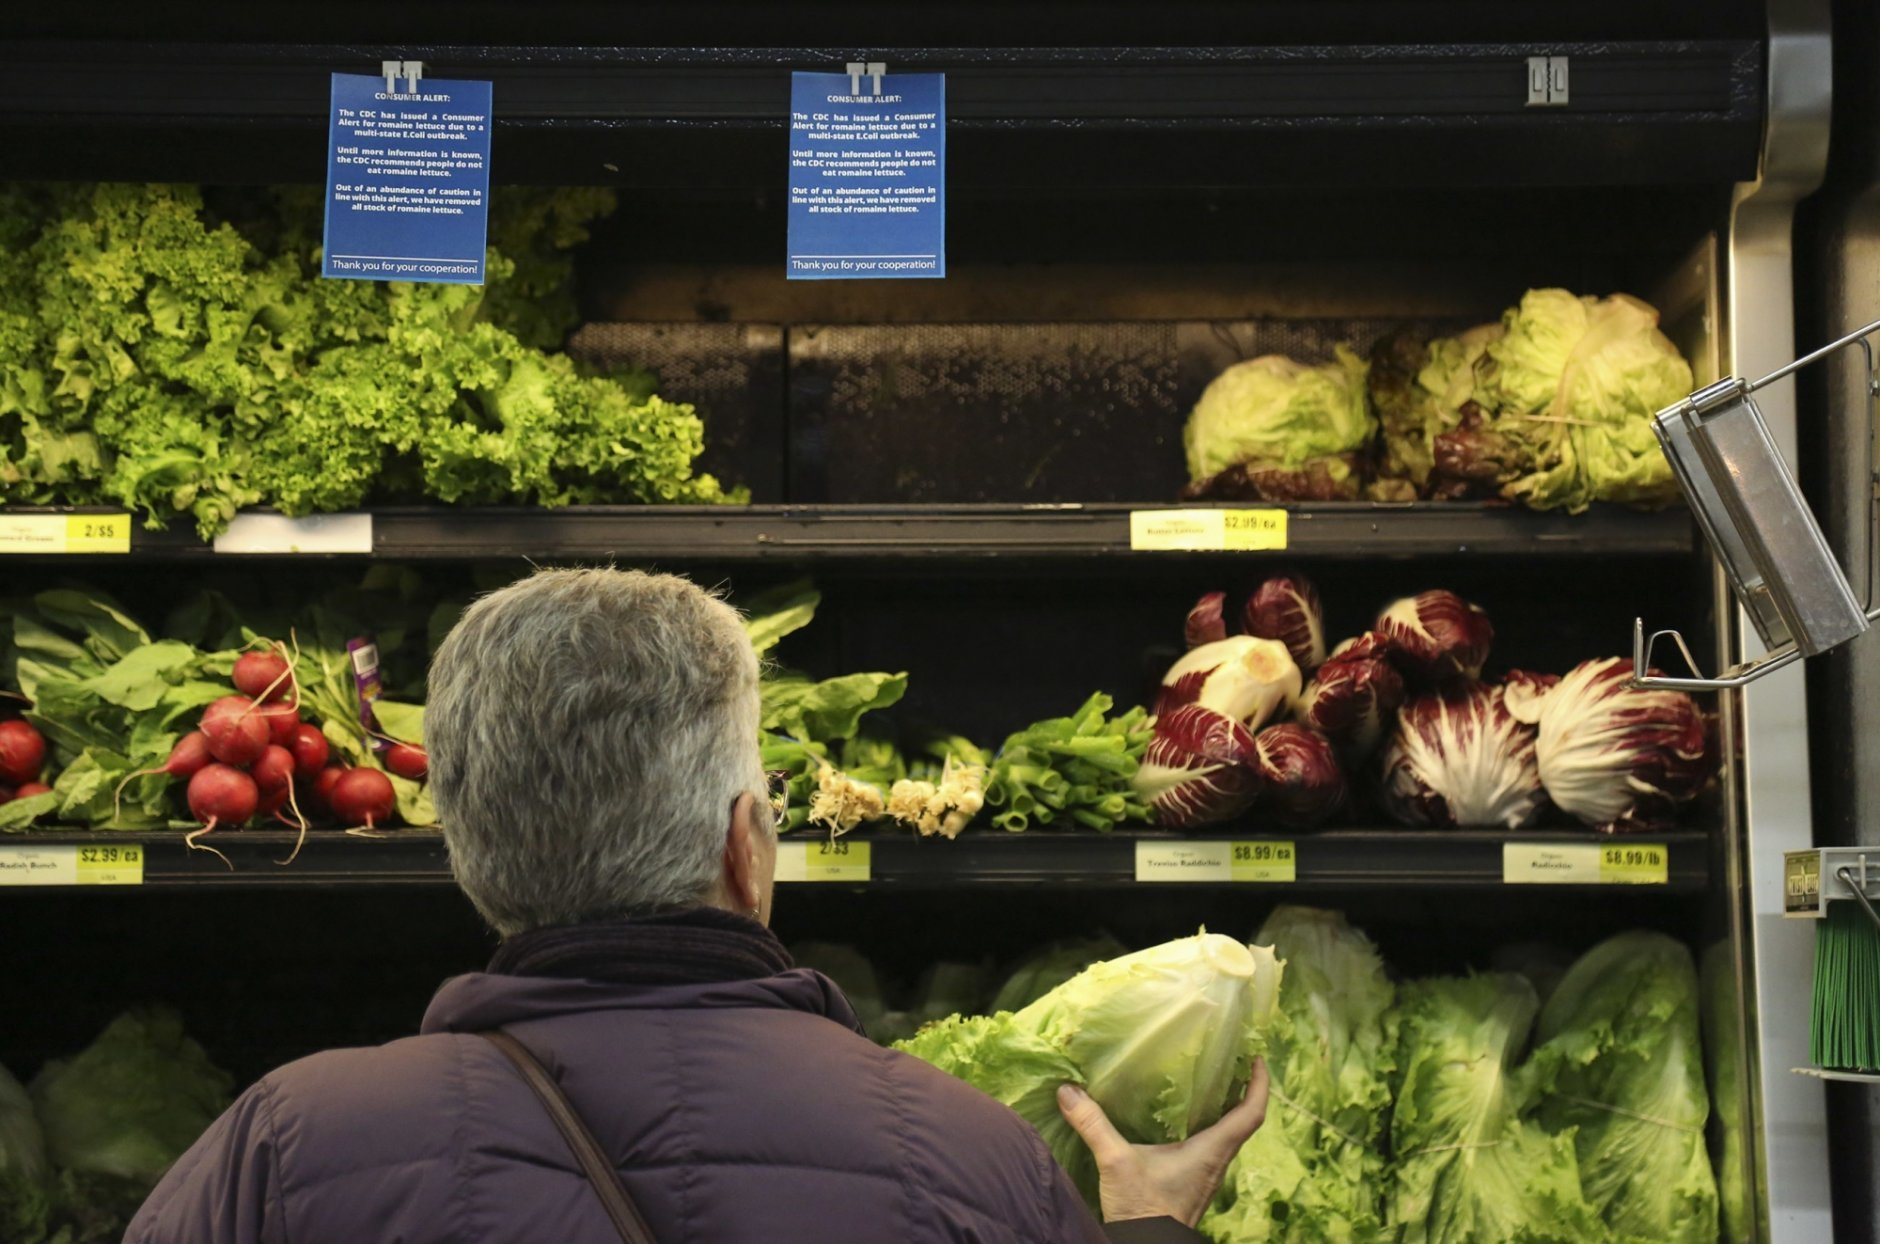 """Lisa Dennis of Regent Square selects a head of green lettuce from the vegetable shelves at the East End Food Co-op Federal Credit Union Tuesday, Nov. 20, 2018, in Pittsburgh. Due to a recent consumer alert regarding a multi state E.Coli outbreak the Co-op has replaced their fresh and bagged romaine lettuce with blue signs reading, """"The CDC has issued a Consumer Alert for romaine lettuce due to a multi state E.Coli outbreak."""" (Jessie Wardarski/Pittsburgh Post-Gazette via AP)"""